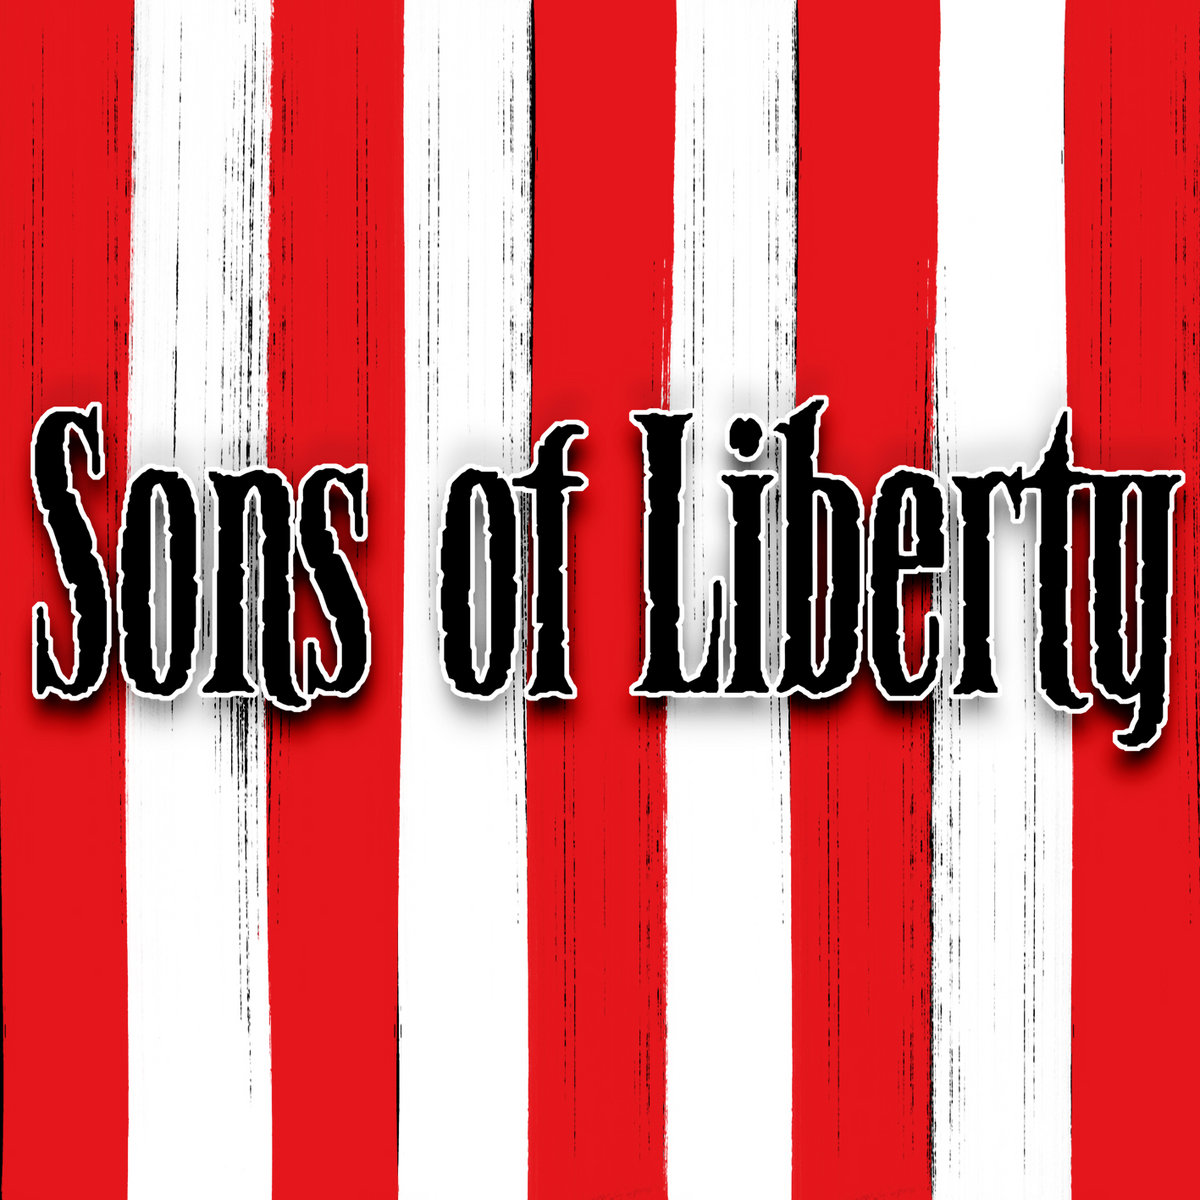 What did the sons of liberty do?